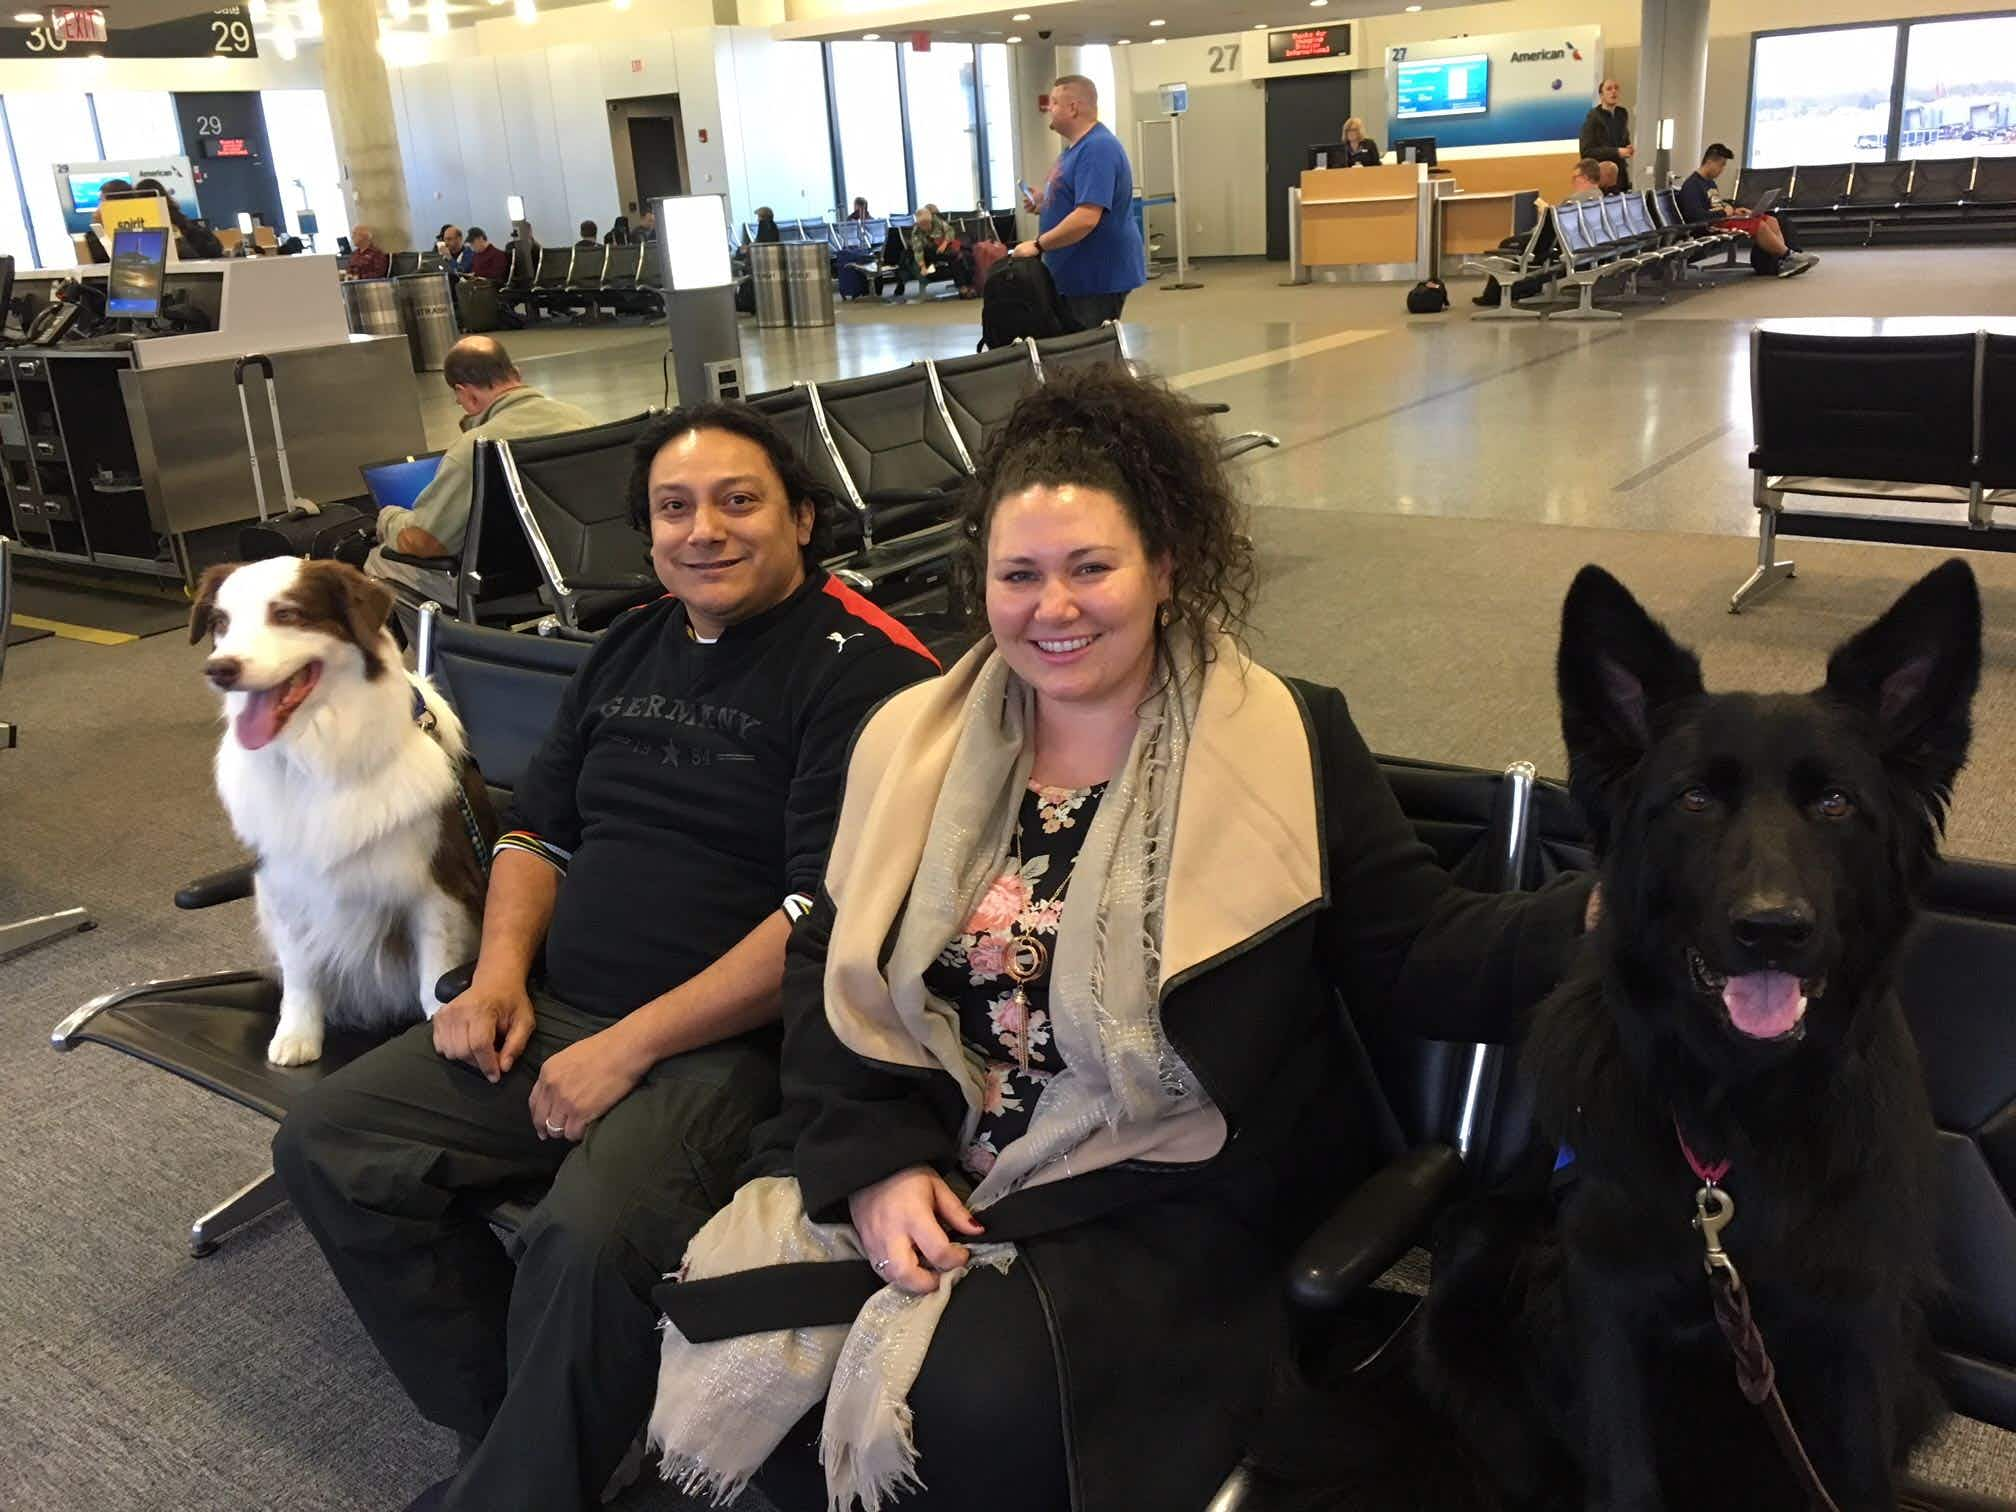 Therapy dogs are helping stressed out travellers at this US airport